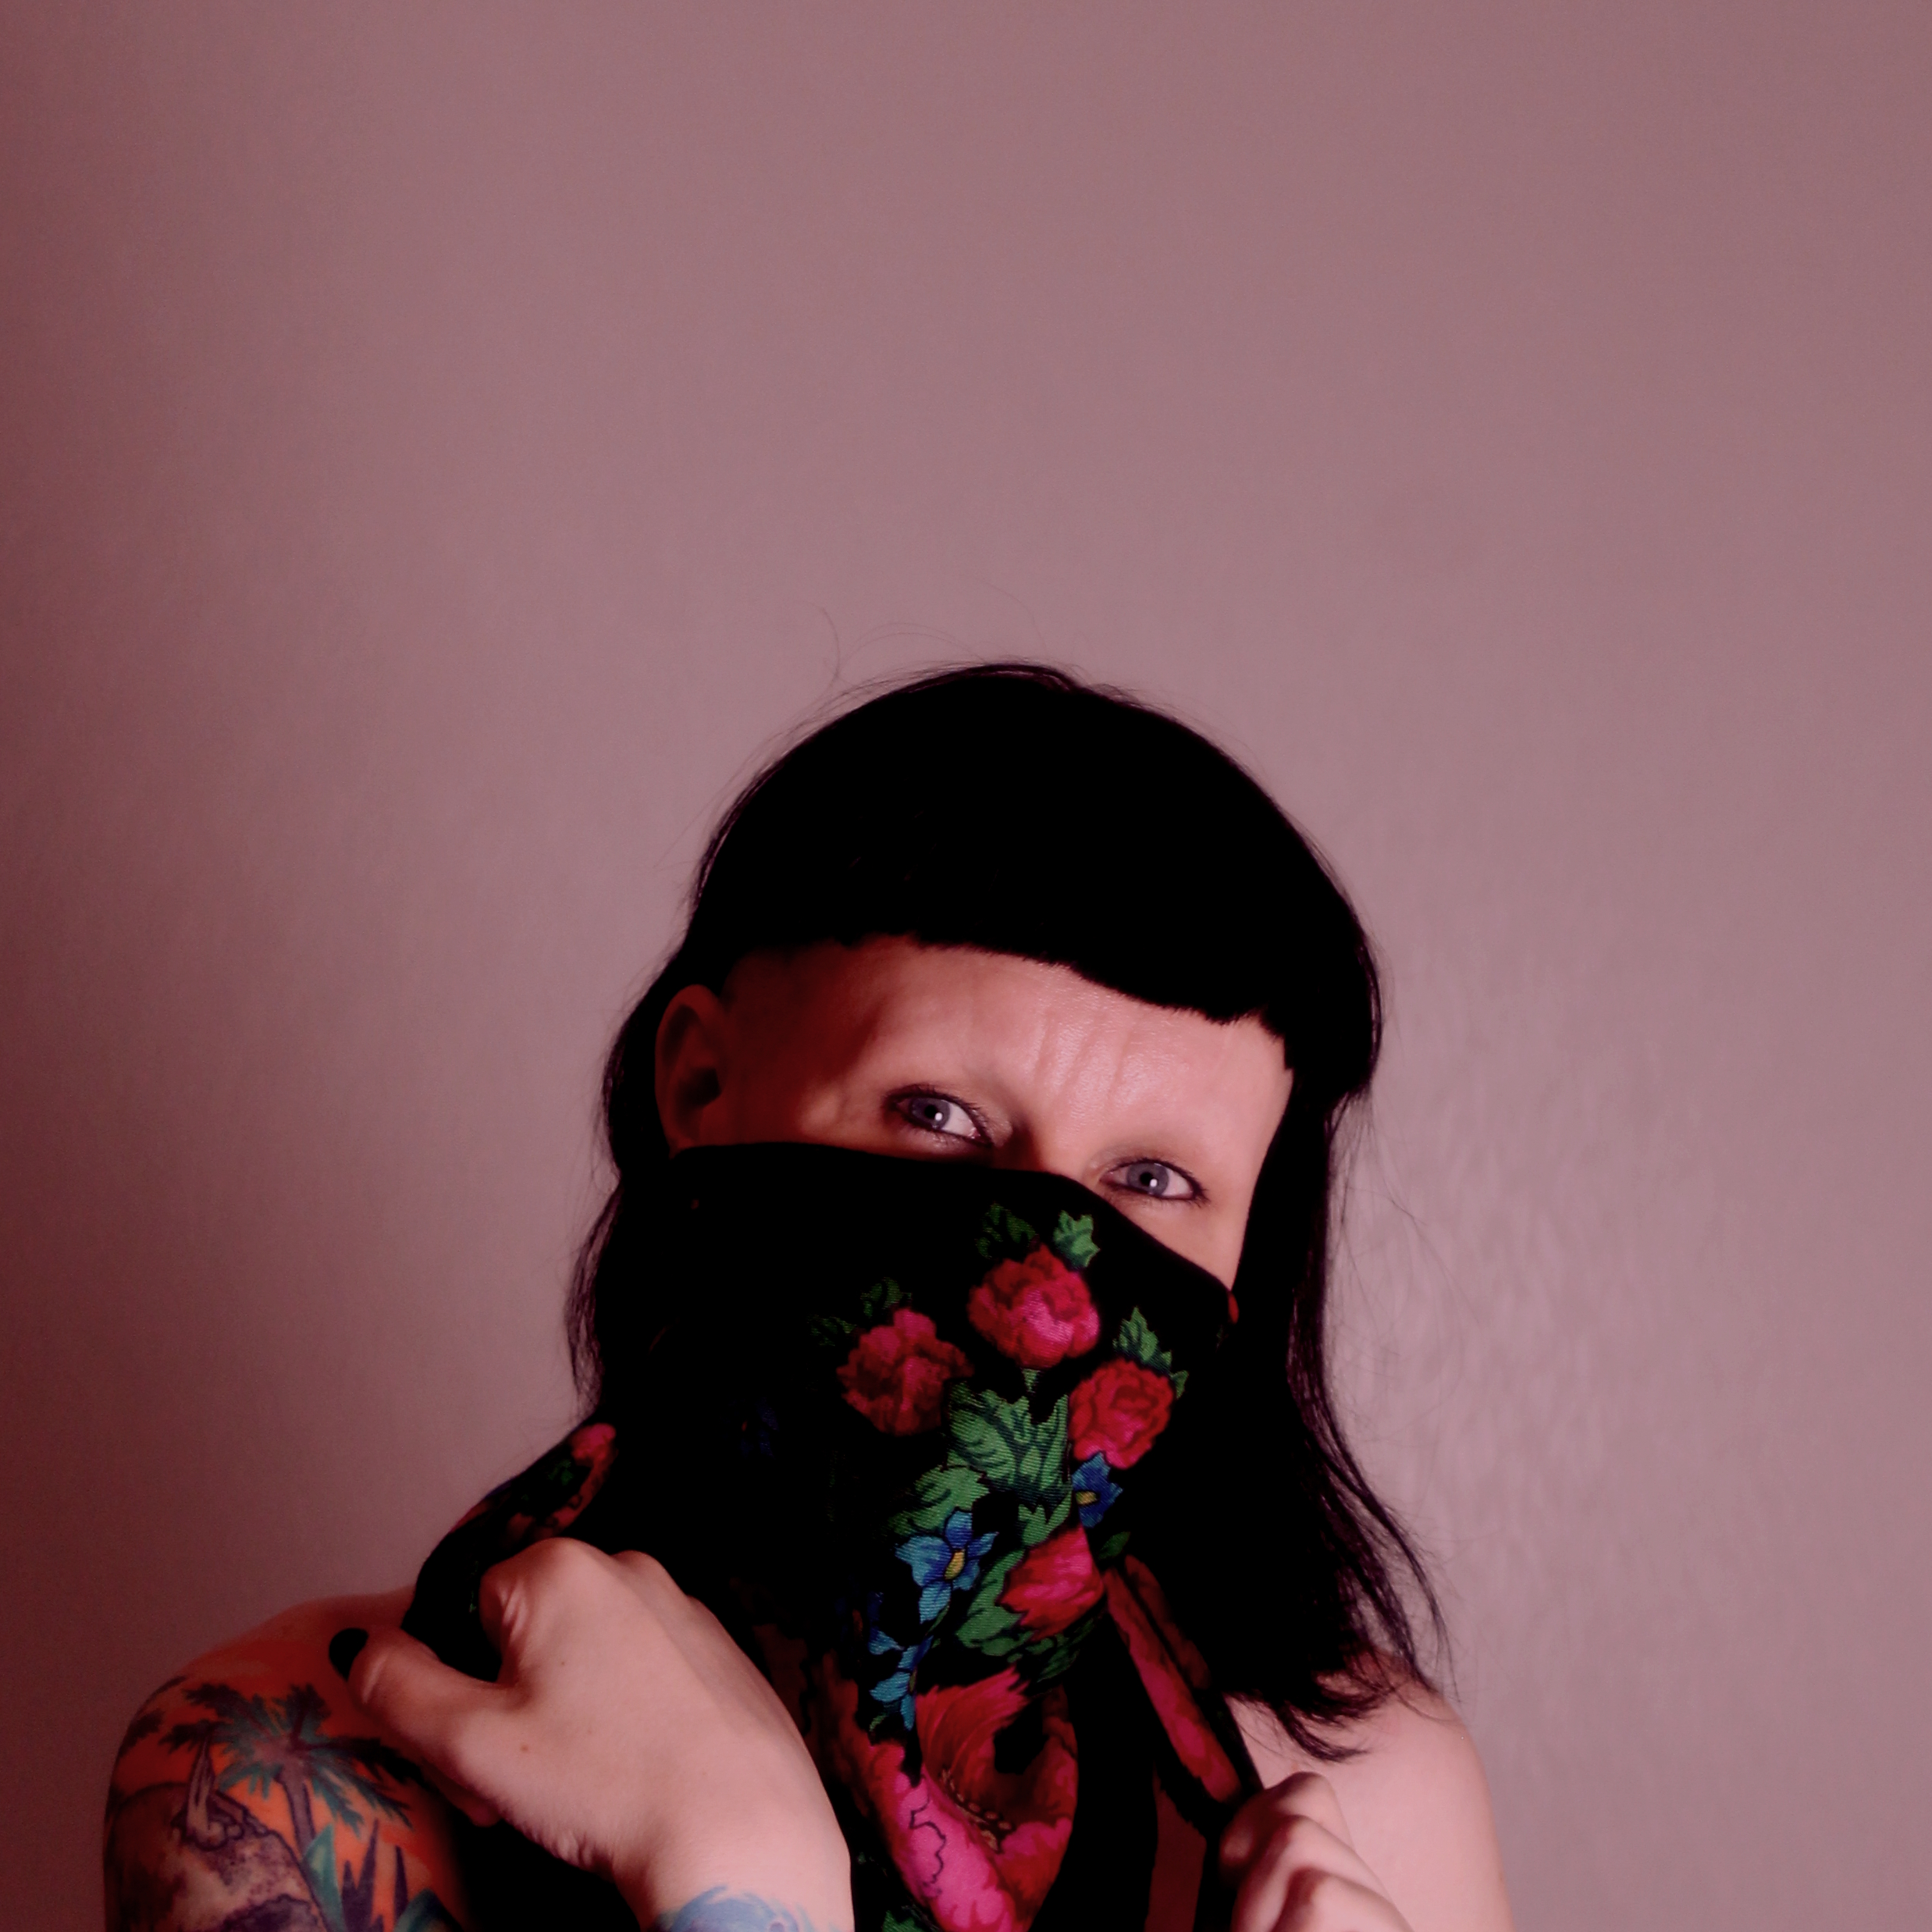 image of Pihla Lehtinen in front of a pink background. Pihla has black hair with a fringe and is wearing a black scarf with red roses on her face.